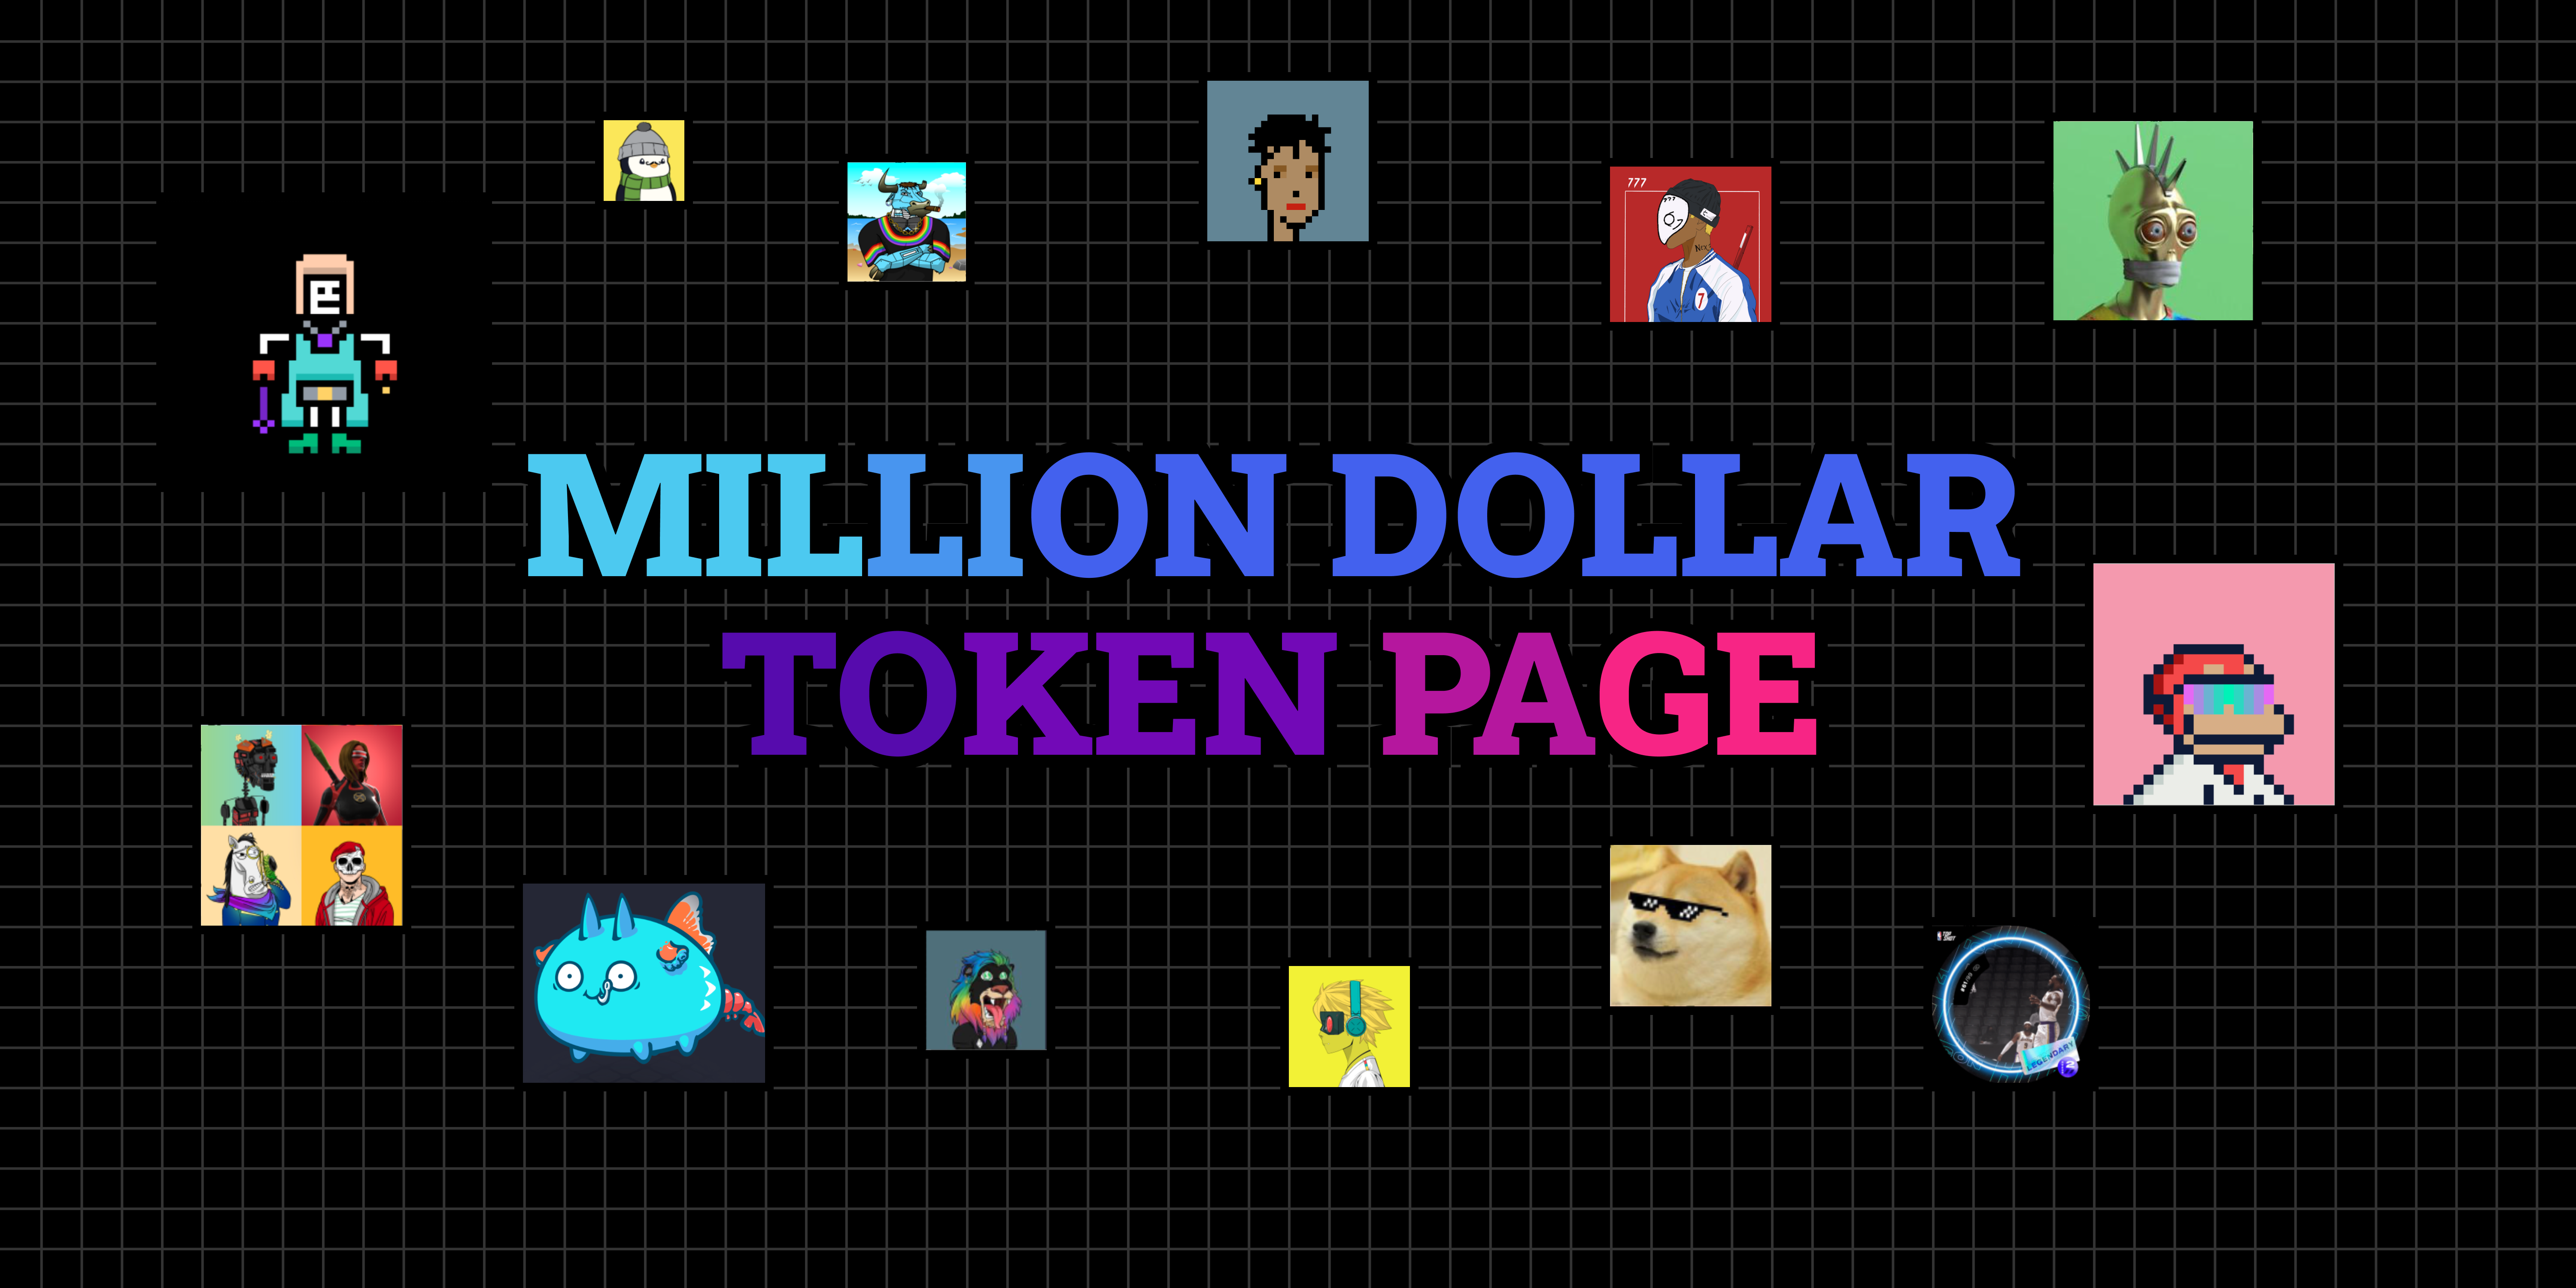 Launching Today Million Dollar Token Page - the